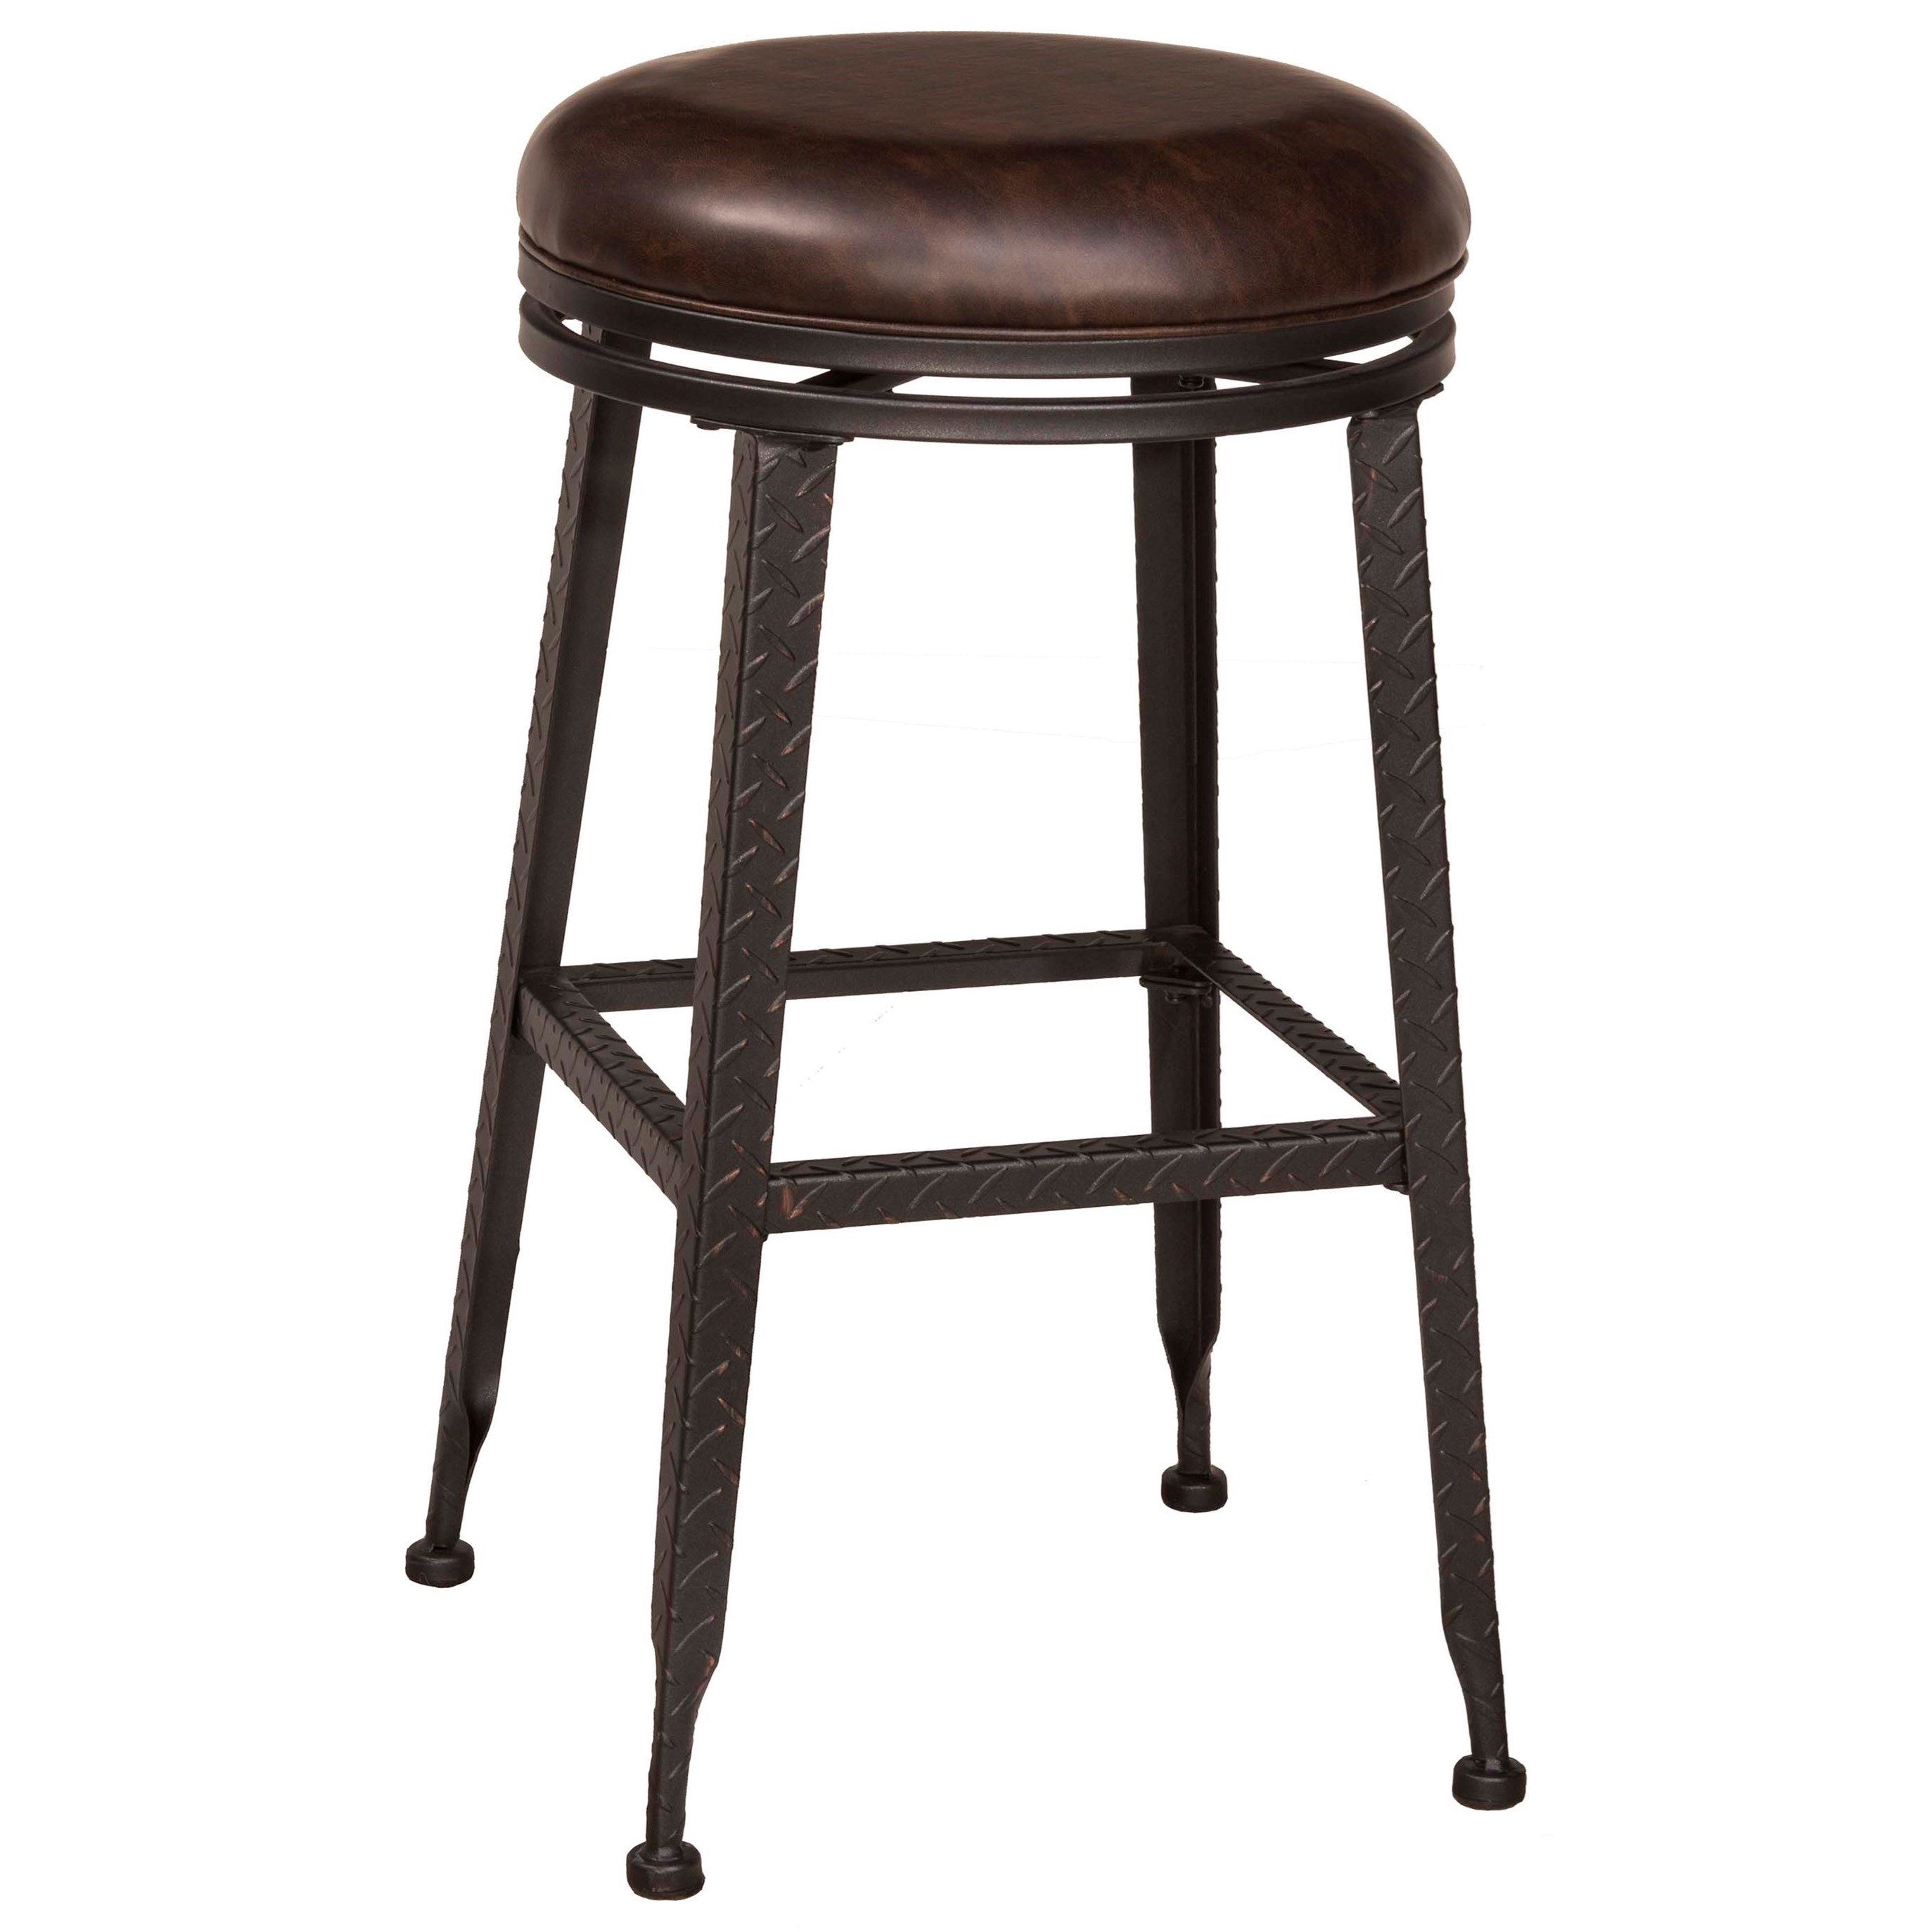 backless chair height stool fishing lounge hillsdale bar stools black metal with copper